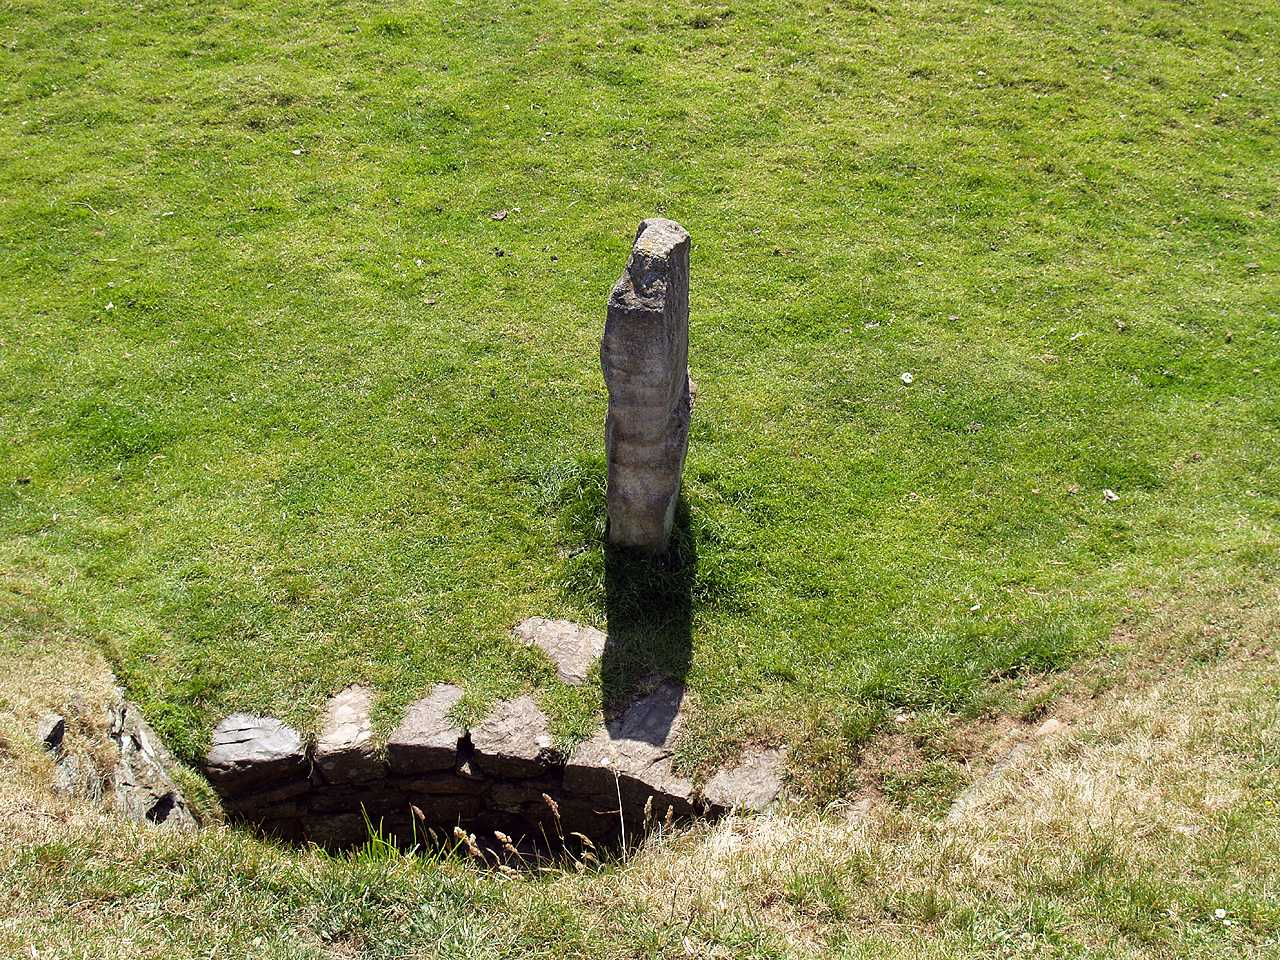 Anglesey, Llanddaniel, Bryn Celli Ddu, the engraved standing stone from the top of the mound